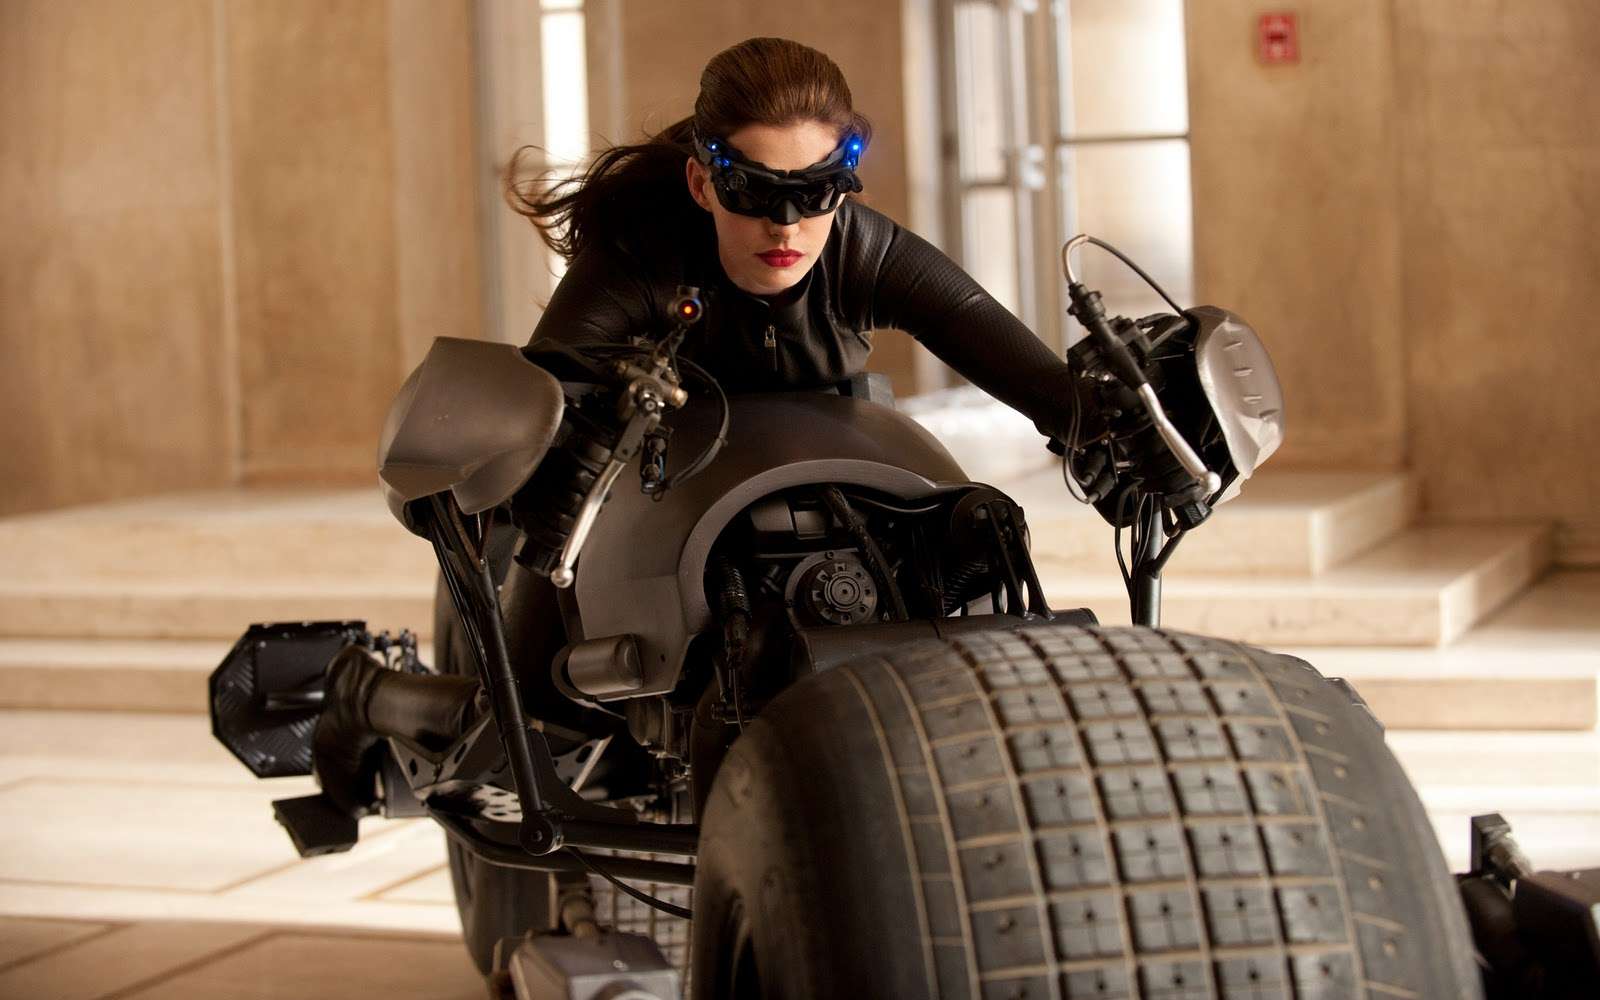 anne_hathaway_as_catwoman-2560x1600